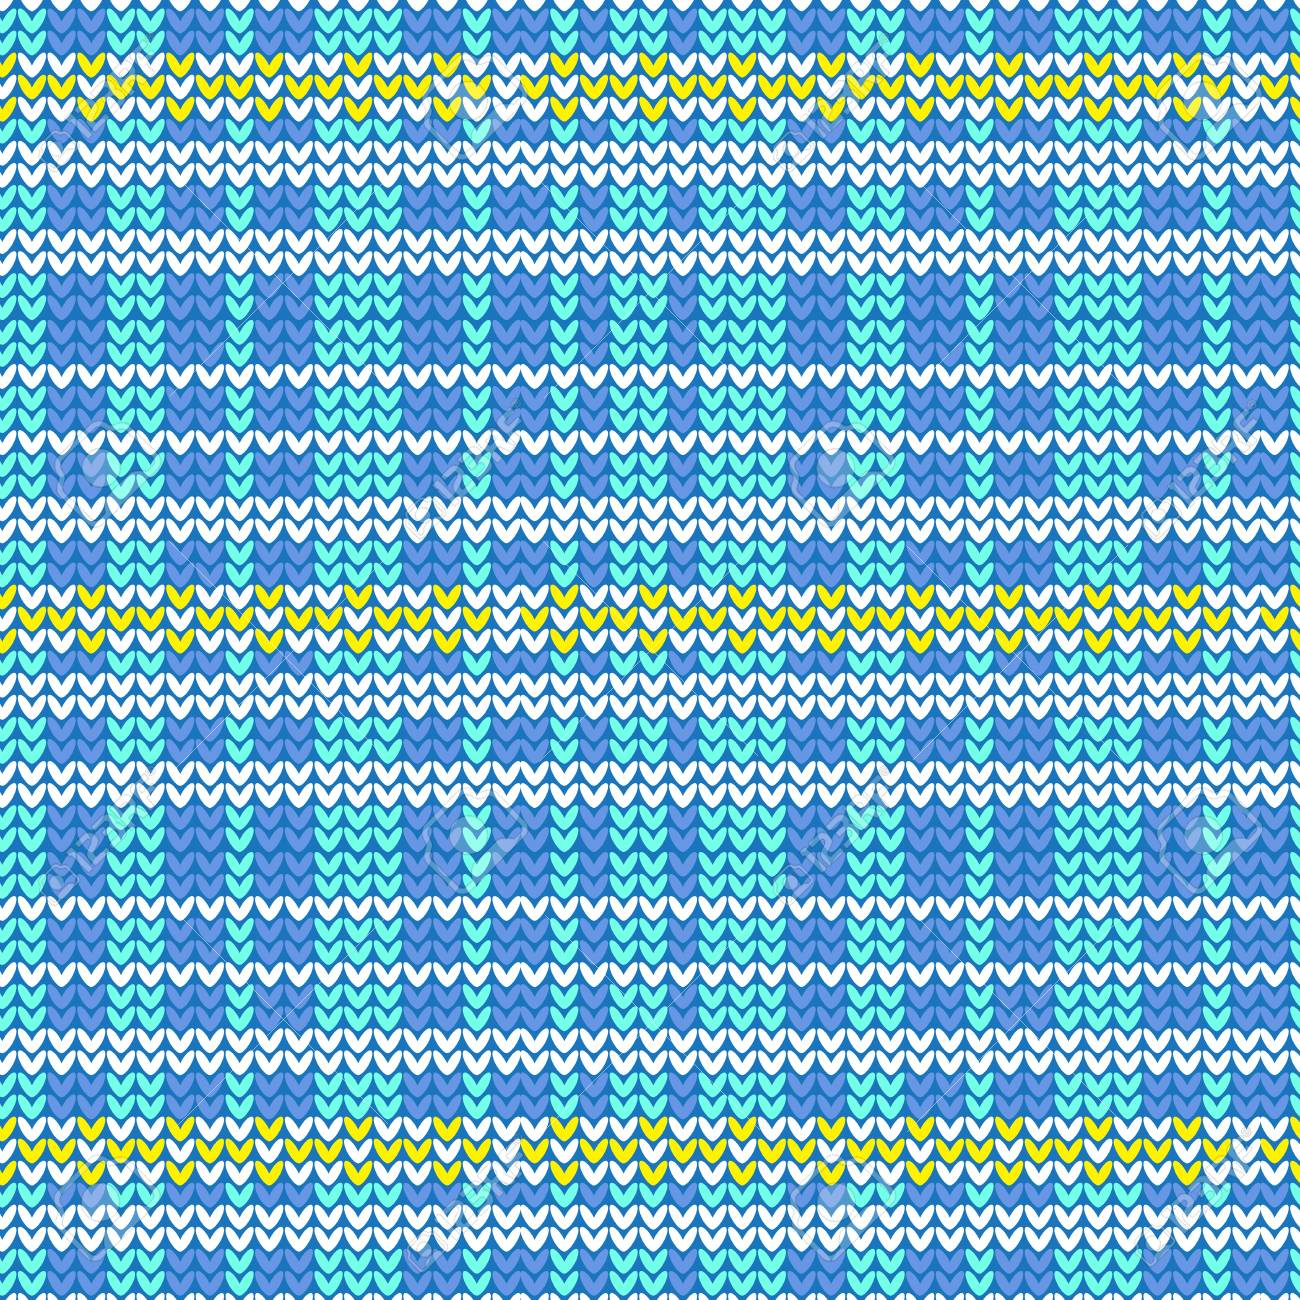 Blue Shade And White Plaid With Yellow Diamond Shape Striped ...